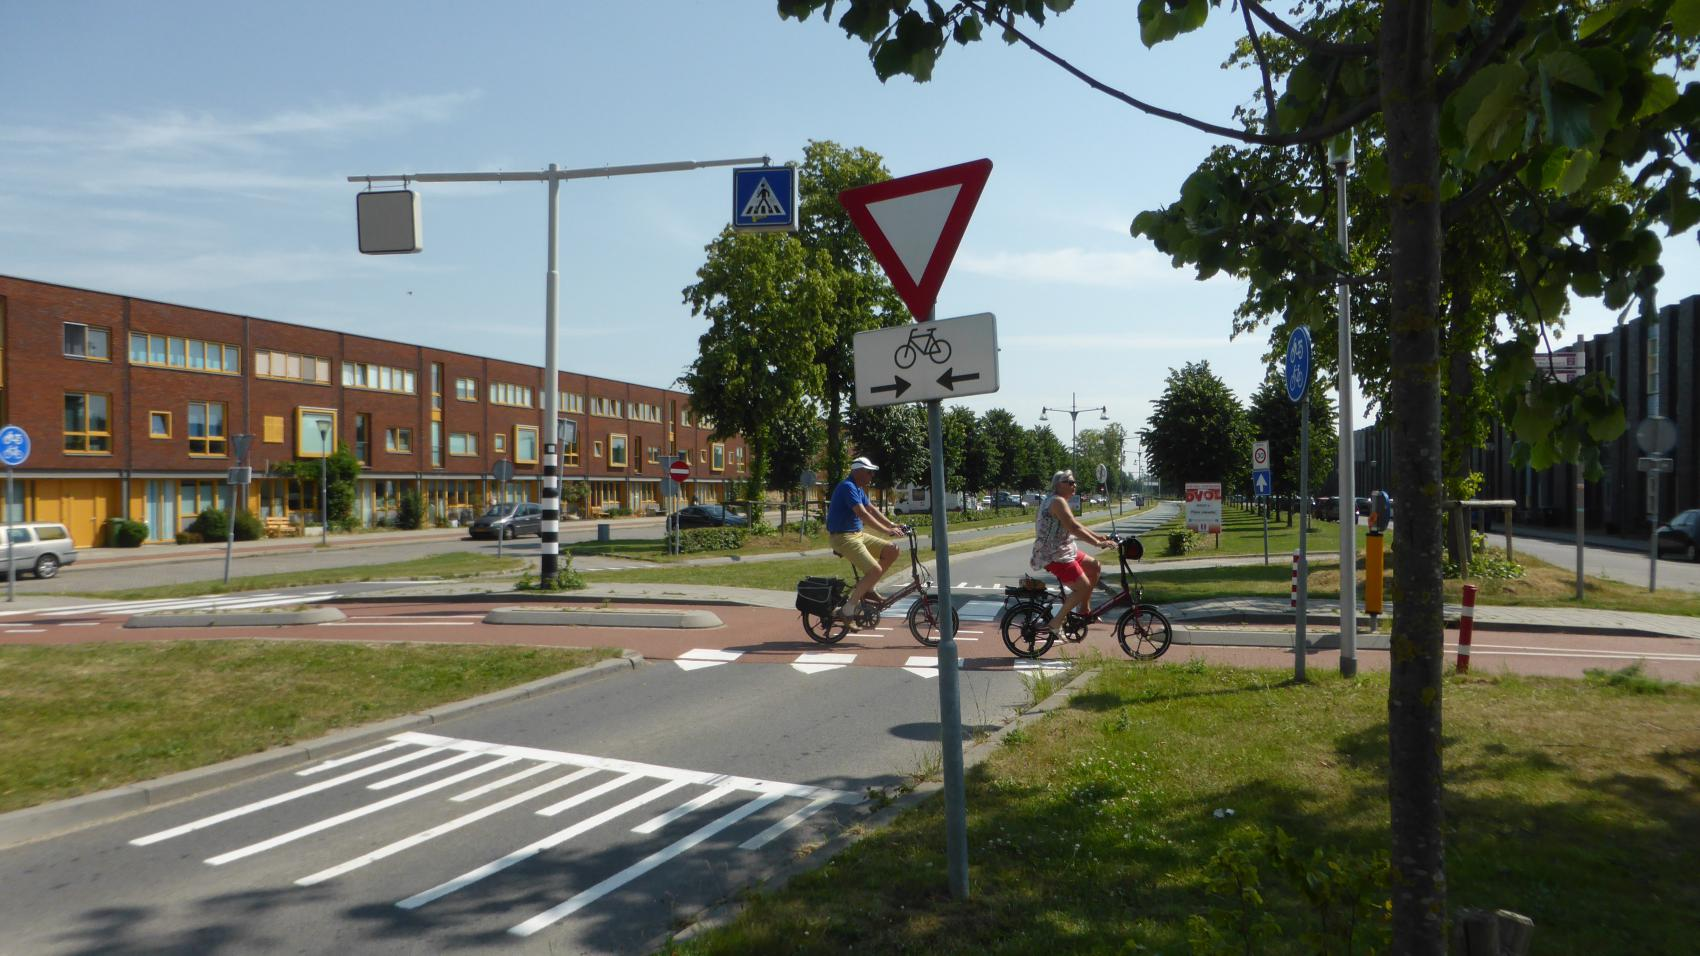 Clear priority of the cycle highway at crossing with Vrouwe Udasingel. For additional safety, traffic cushions were added on the carriageway 20 m before the crossing.